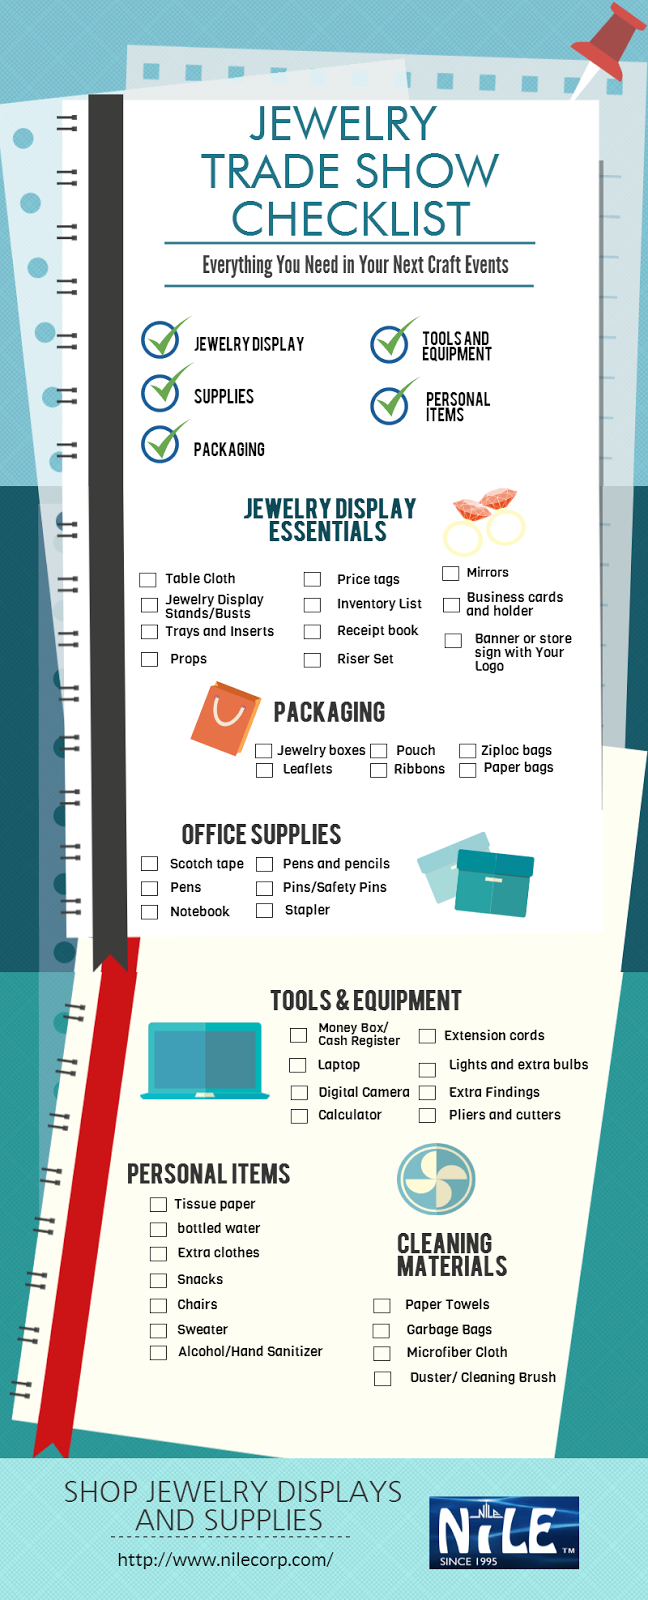 Jewelry Trade Show Checklist